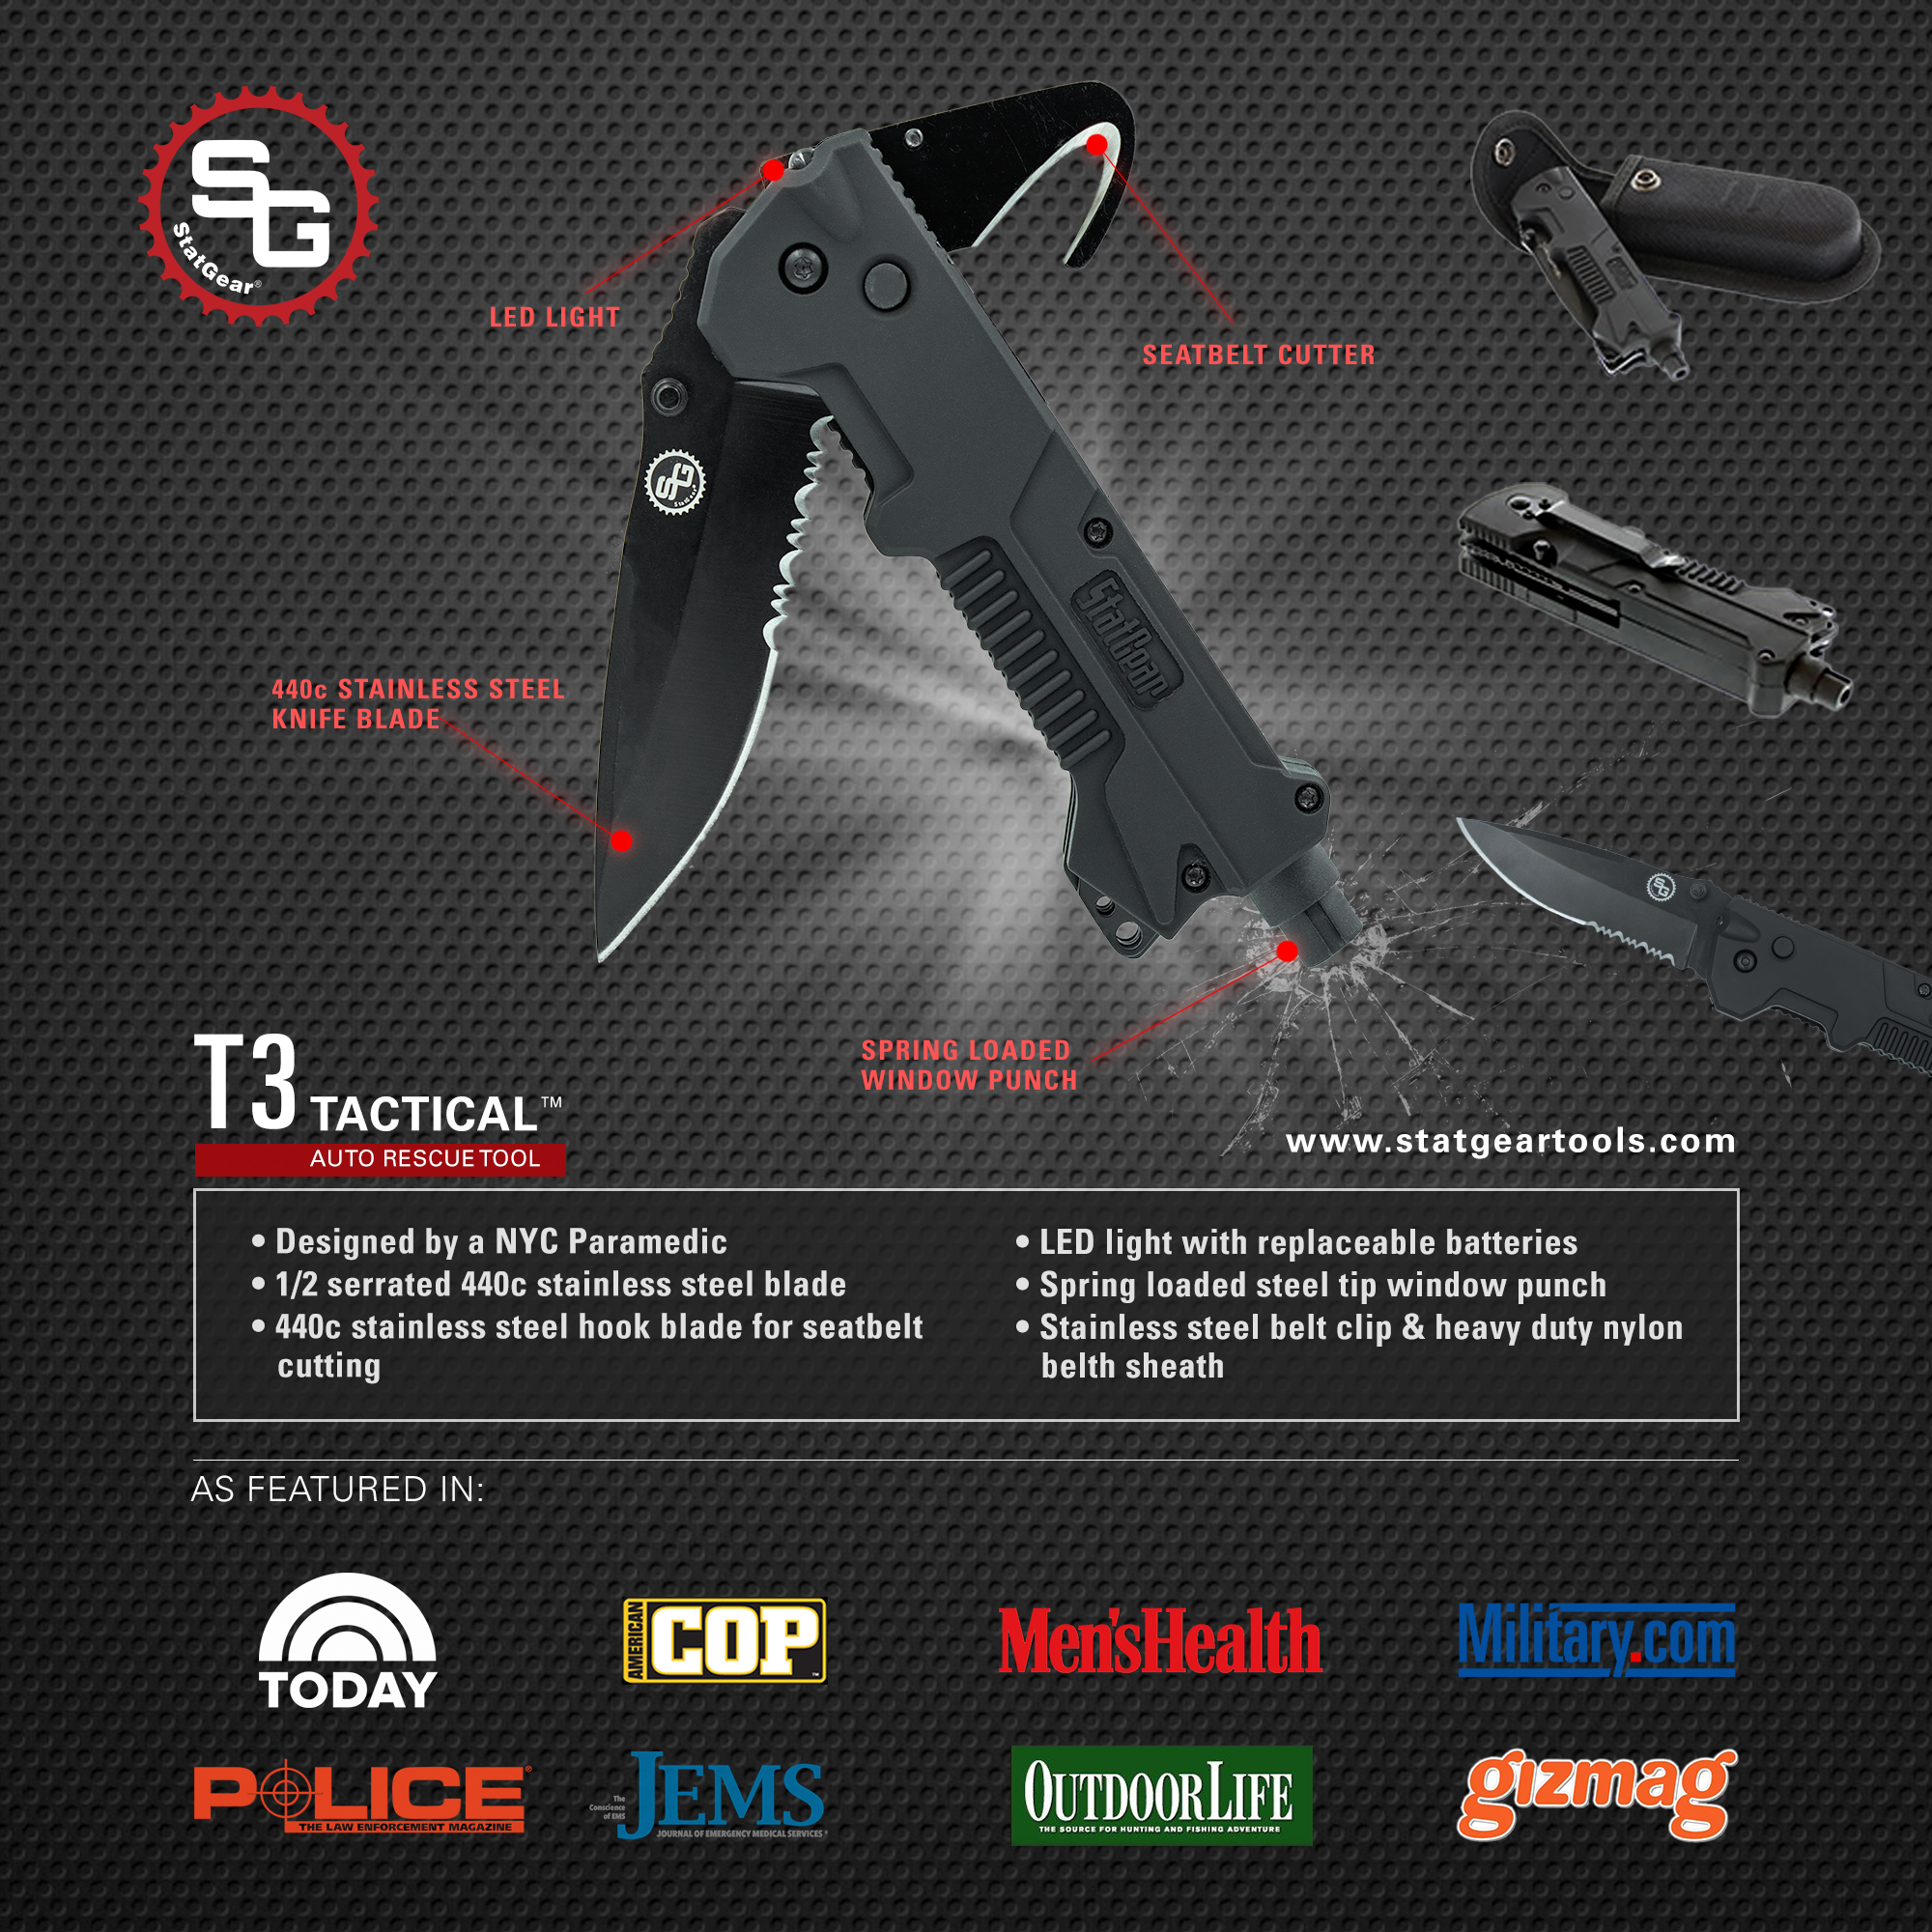 t3-infographic-2000x2000-.png